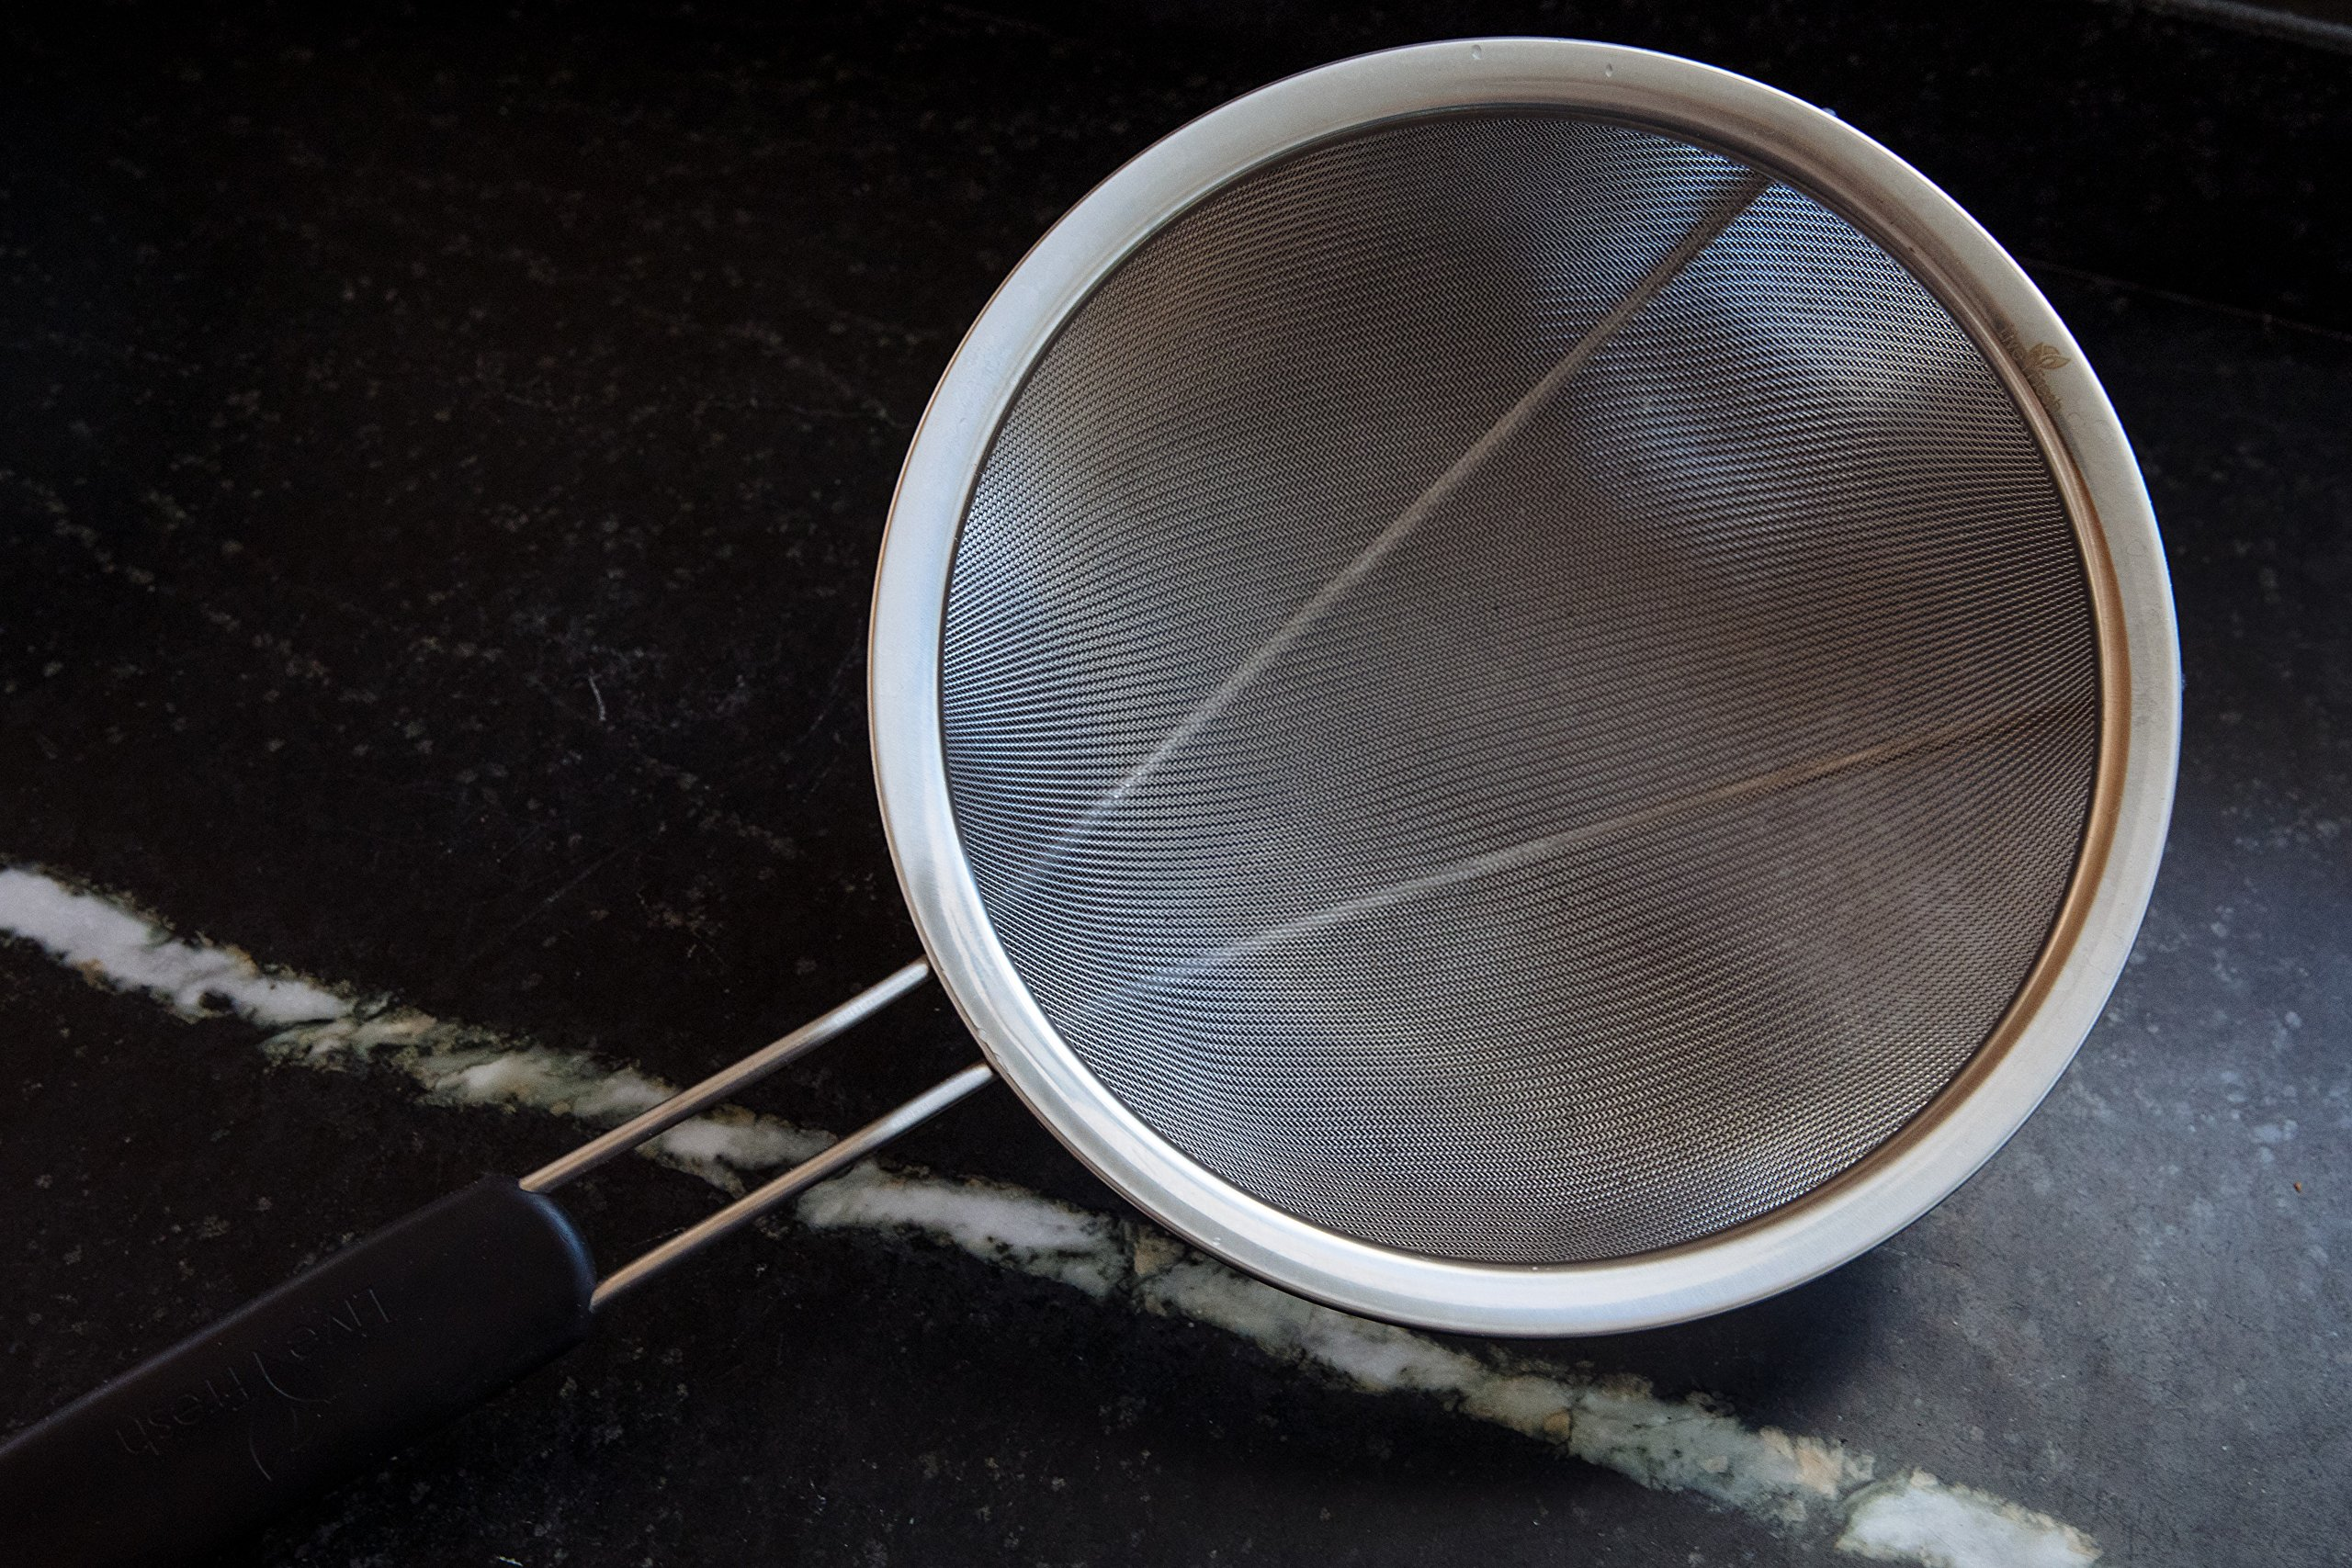 LiveFresh Large Stainless Steel Fine Mesh Strainer with Reinforced Frame and Sturdy Rubber Handle Grip - Designed for Chefs and Commercial Kitchens & Perfect for Your Home - 9 Inch / 23 cm Diameter by LiveFresh (Image #2)